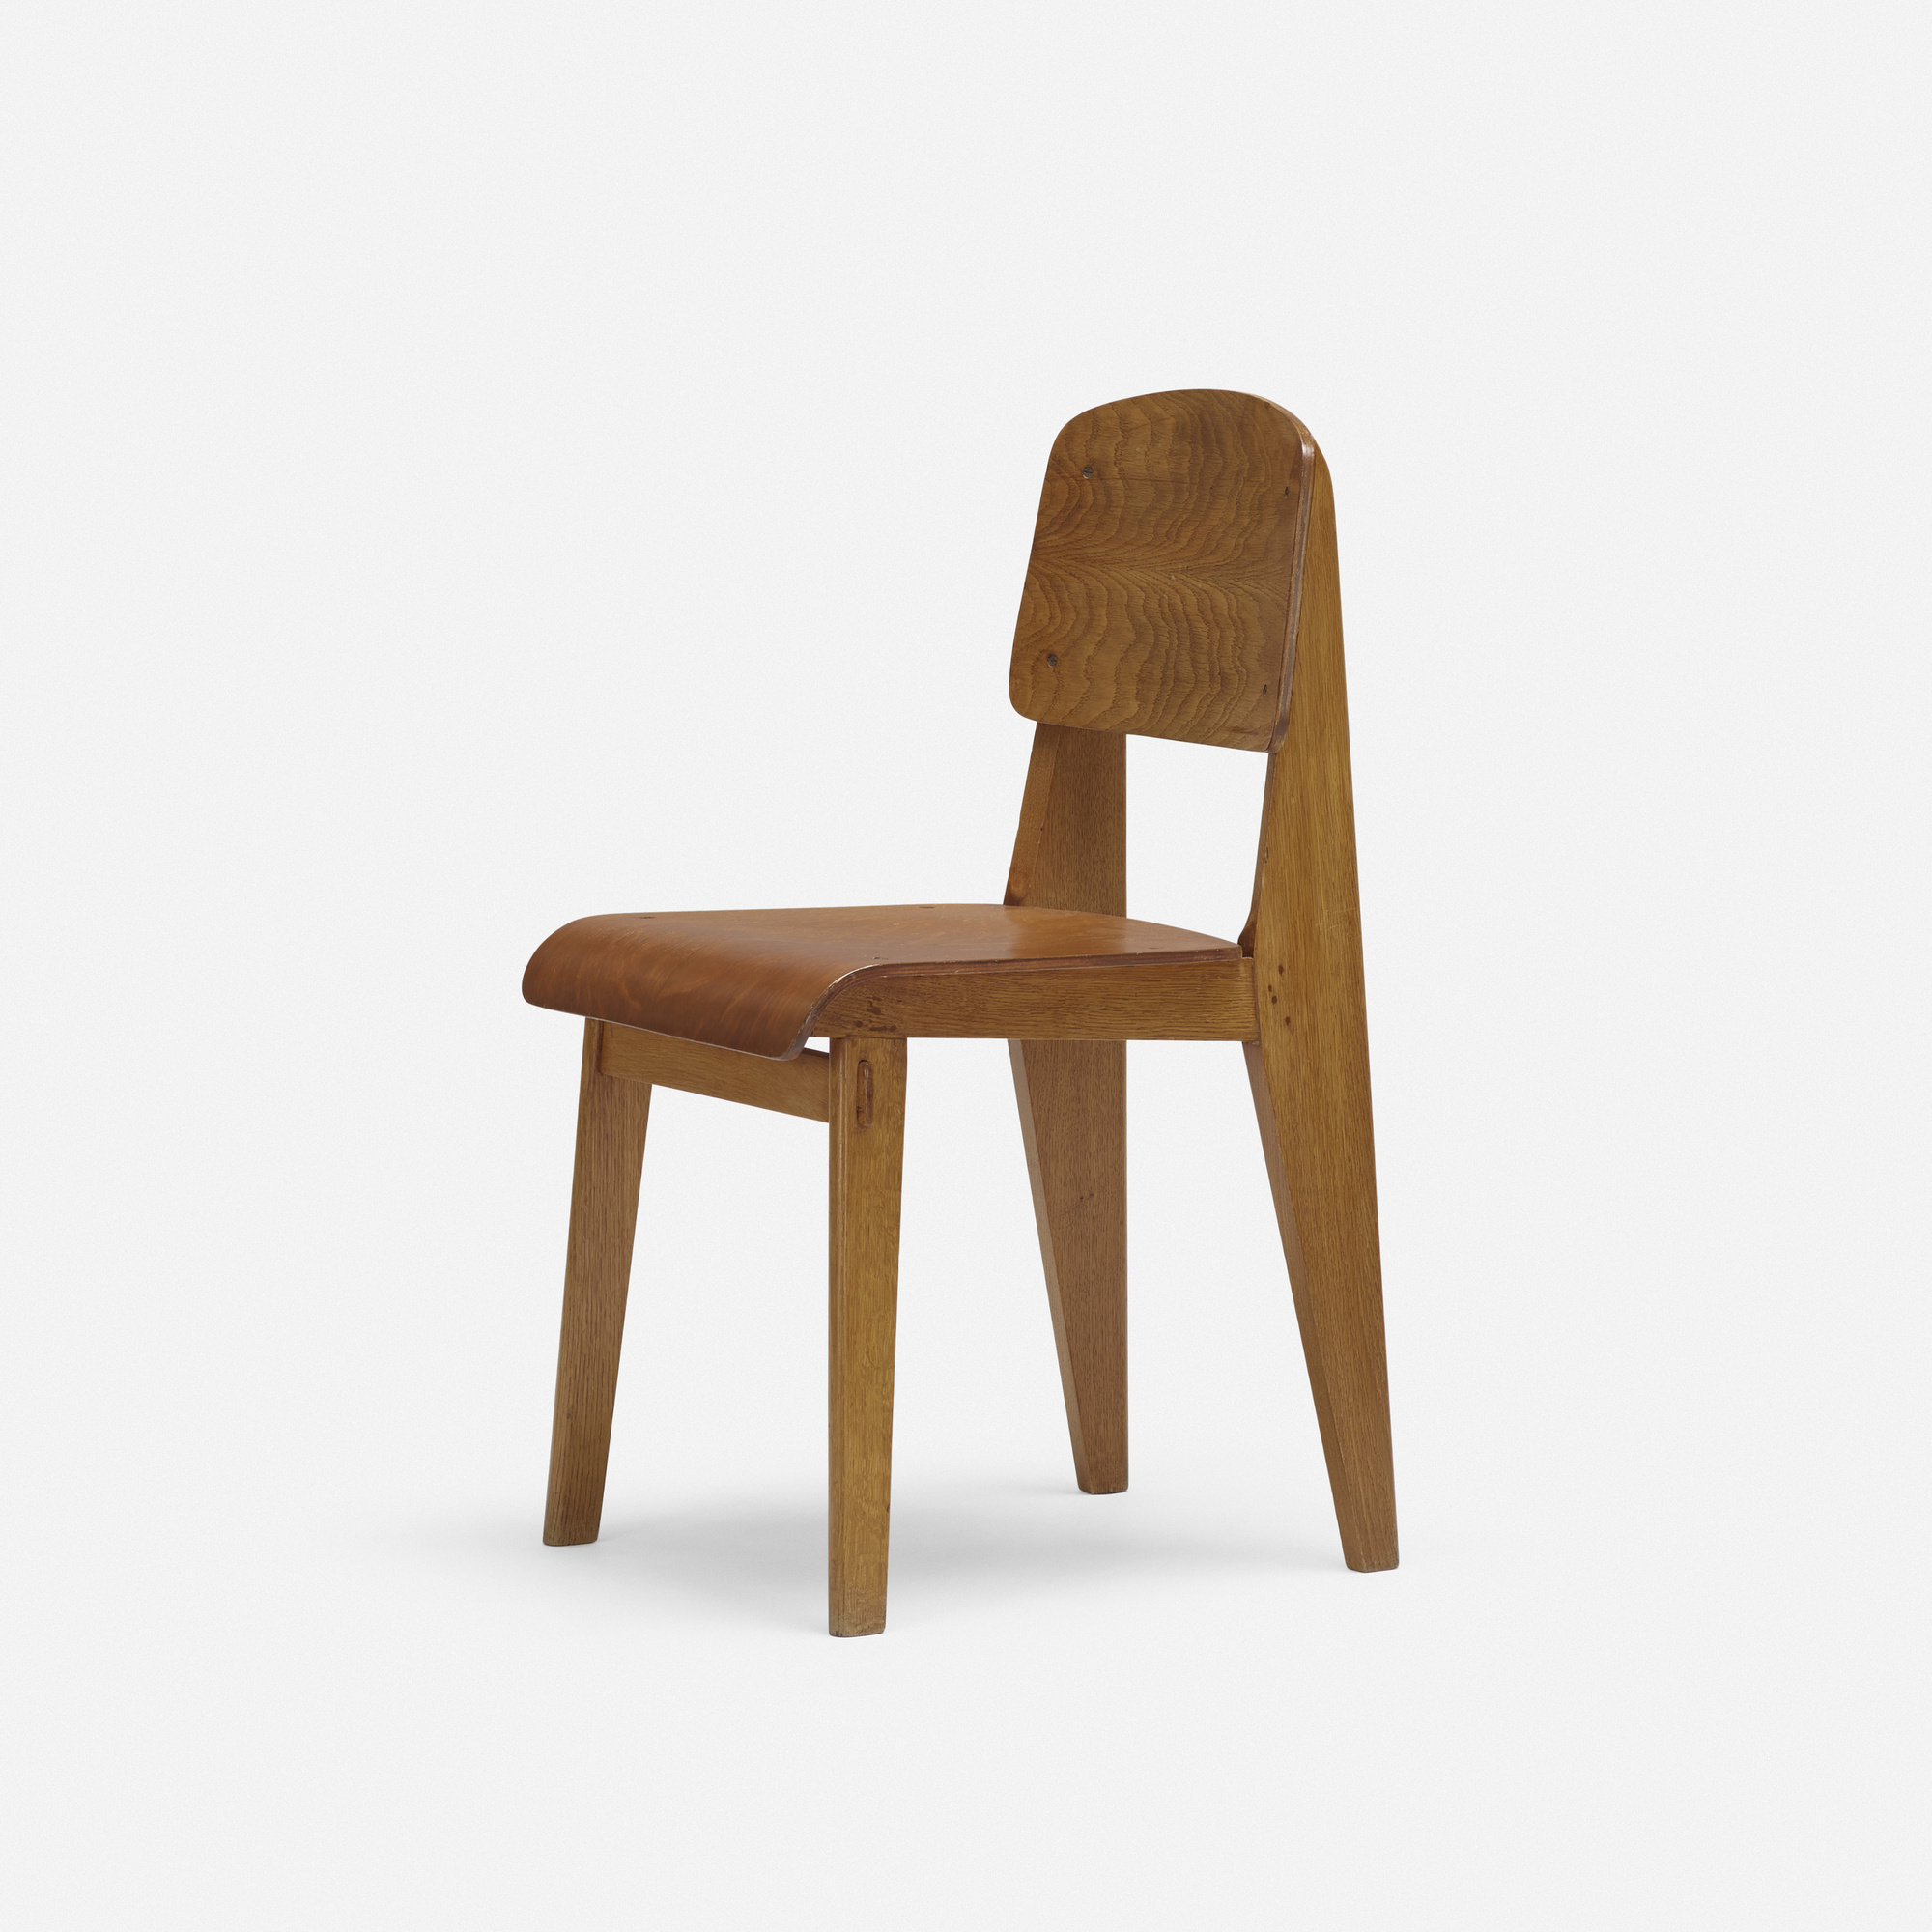 133: Jean Prouvé / Standard Chair, No. 305 (1 Of 4)